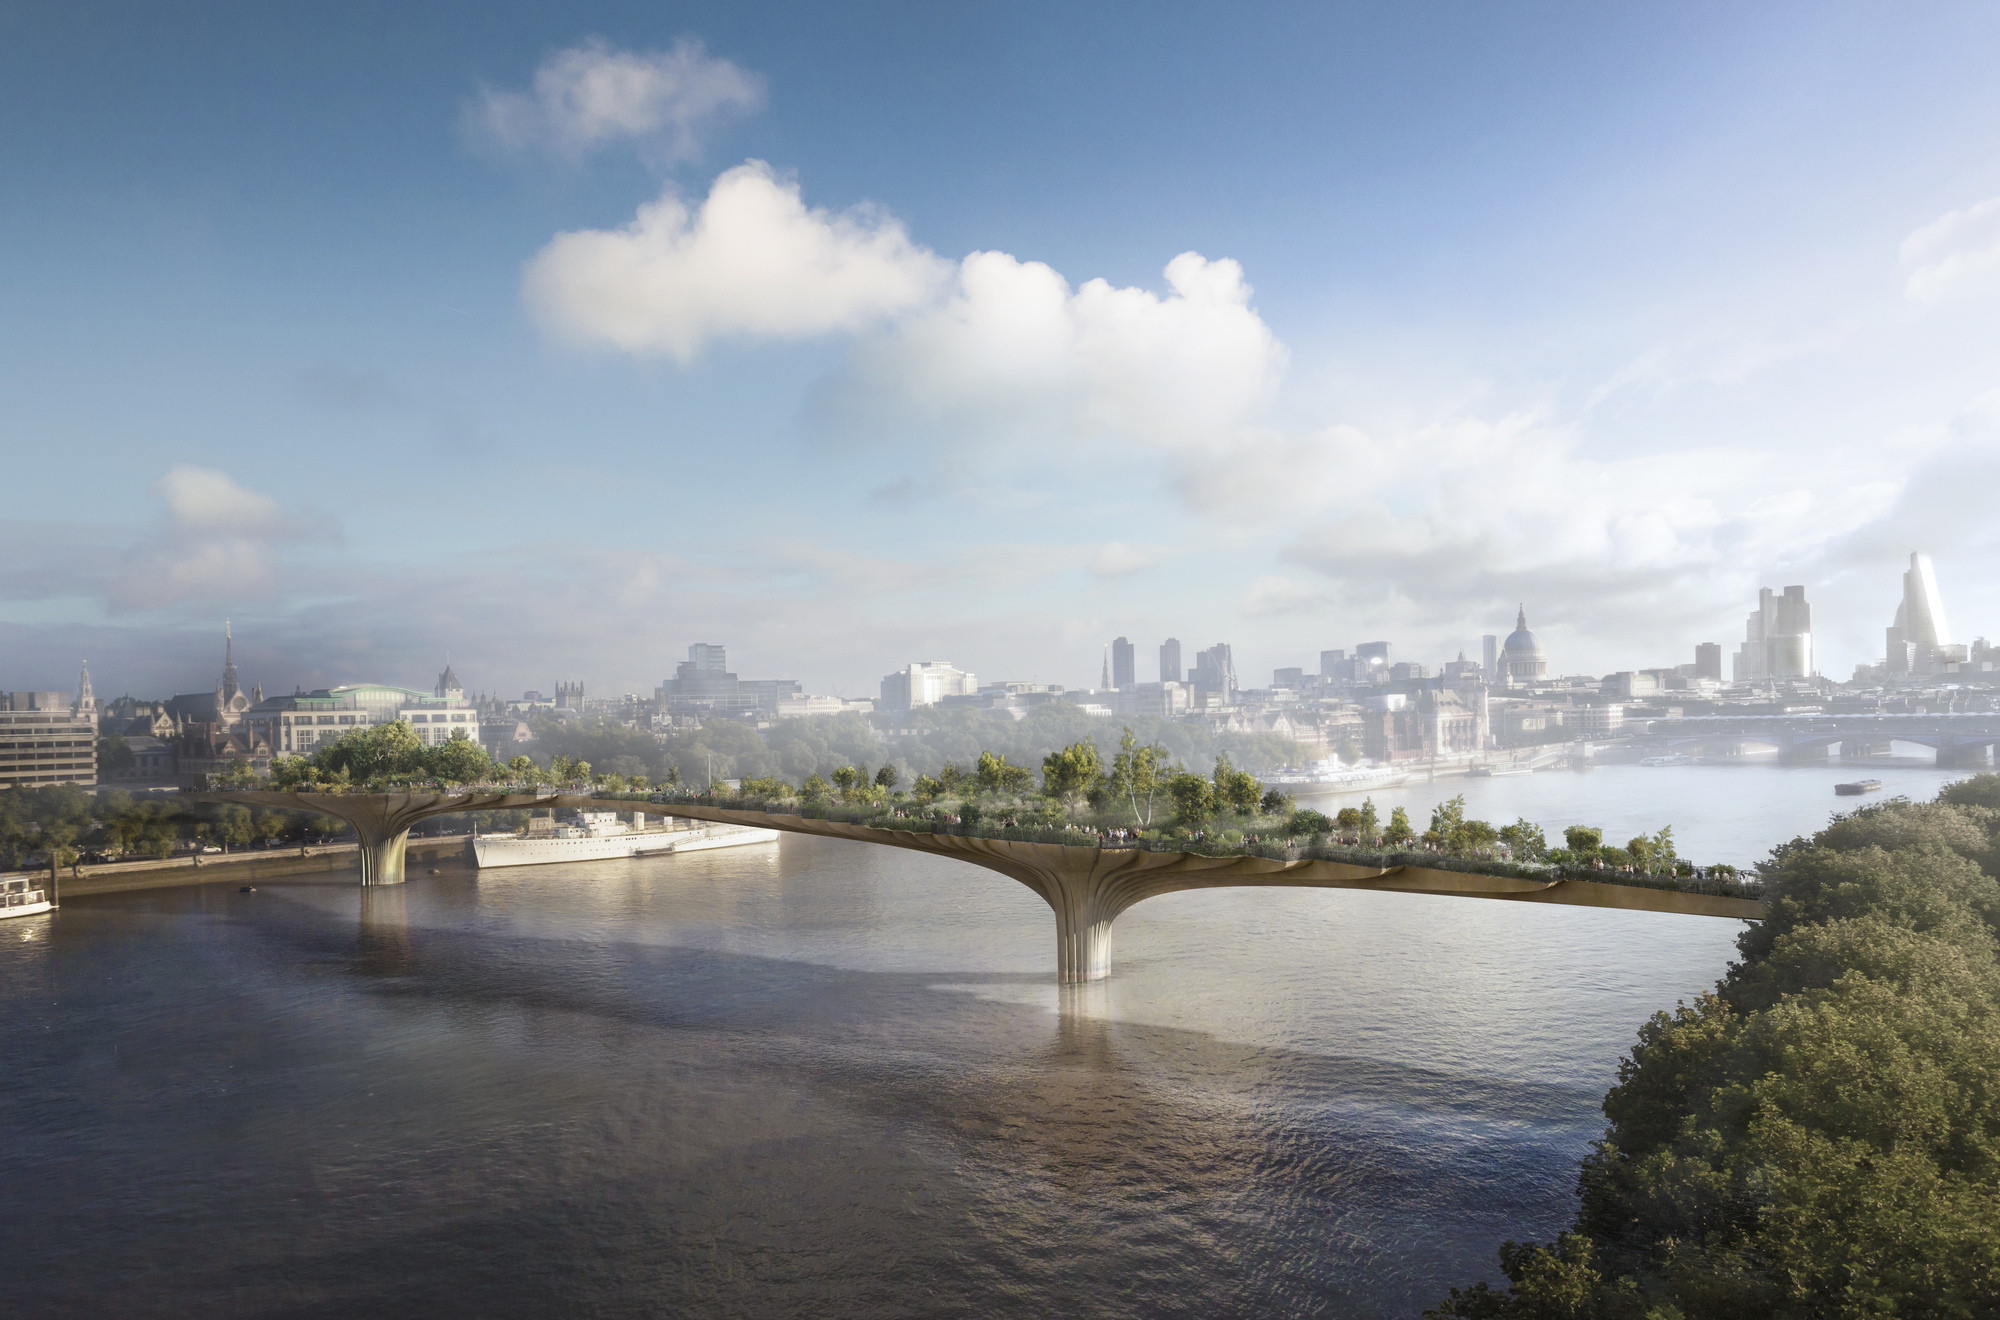 Garden Bridge Gains Final Approval From Mayor of London, Courtesy of Arup